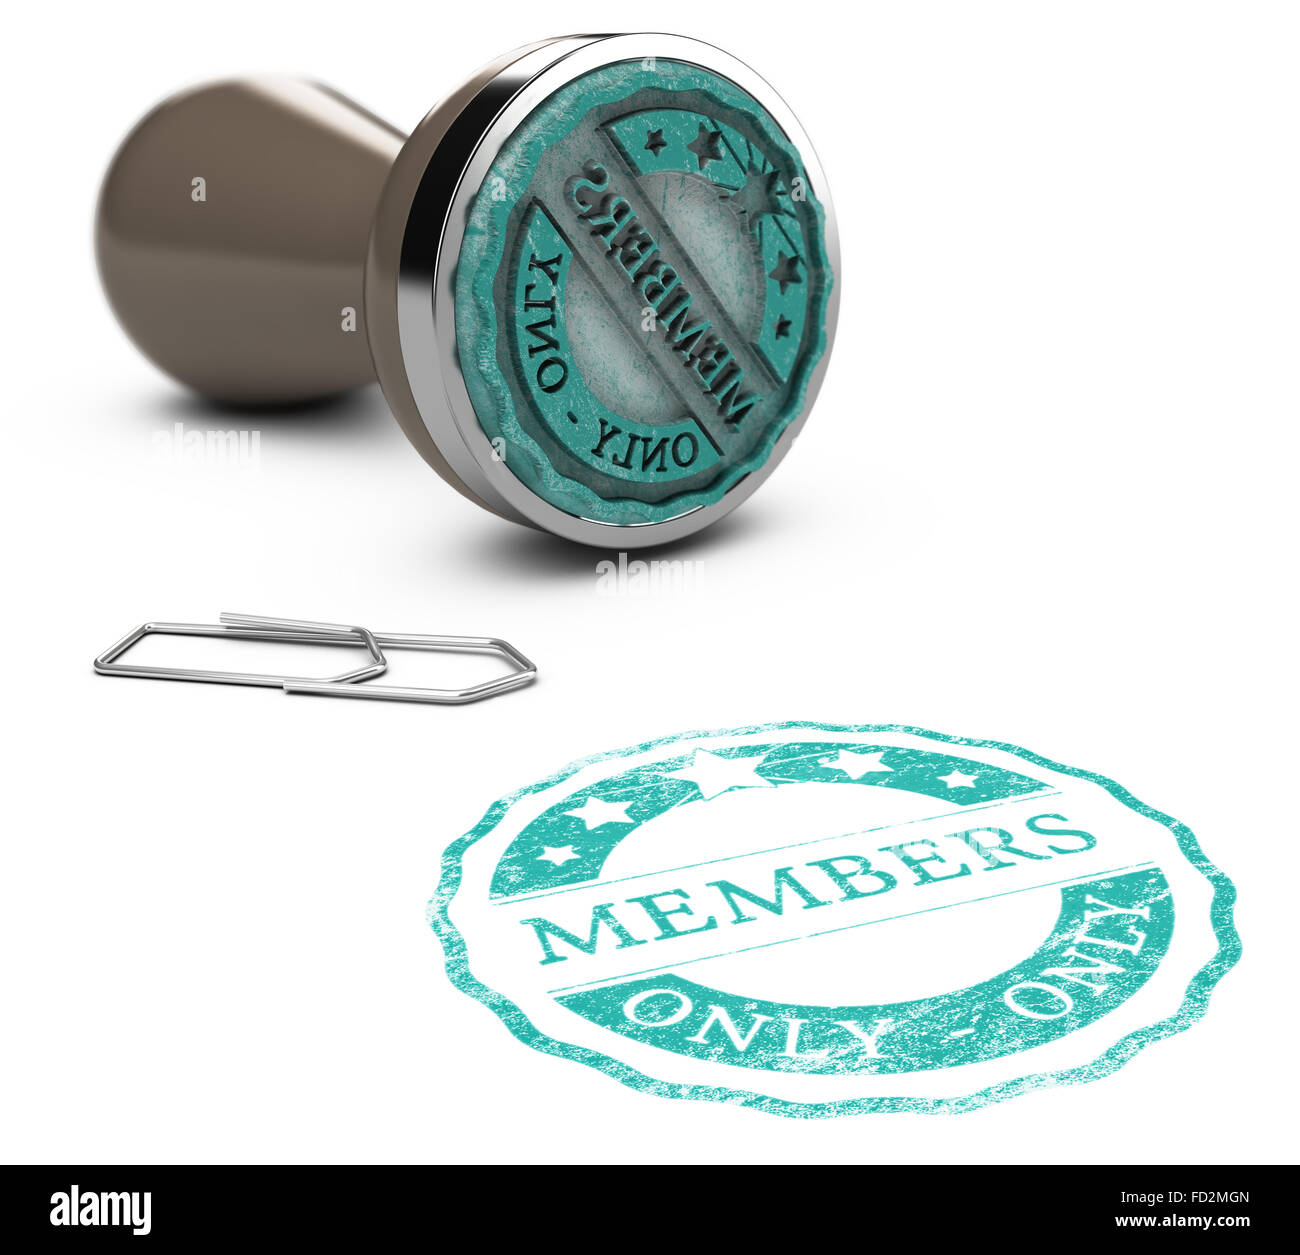 Rubber stamp image with the text members only printed on a white background. Communication concept for Illustration - Stock Image